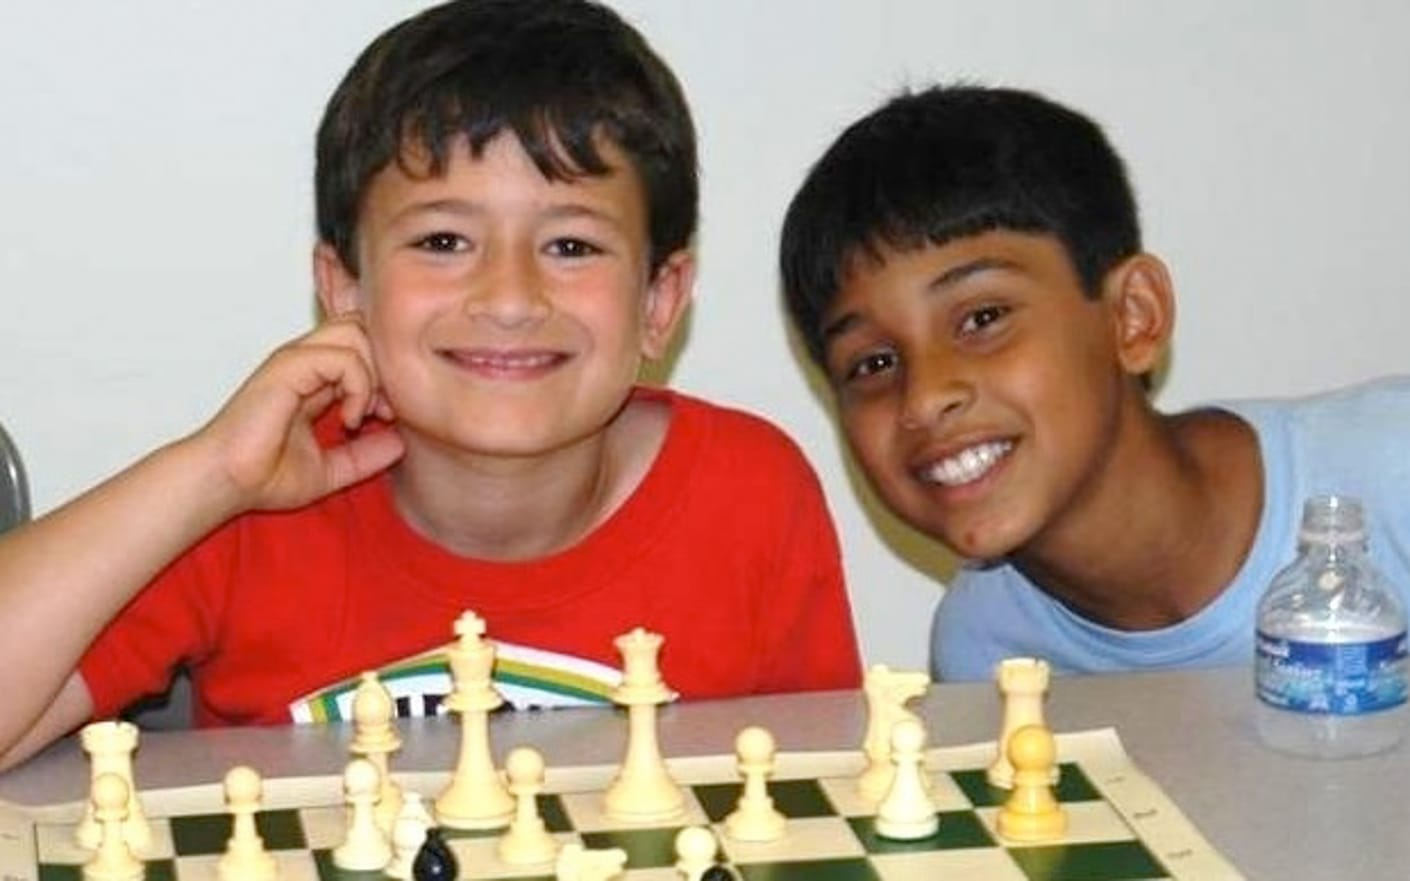 Campers playing chess